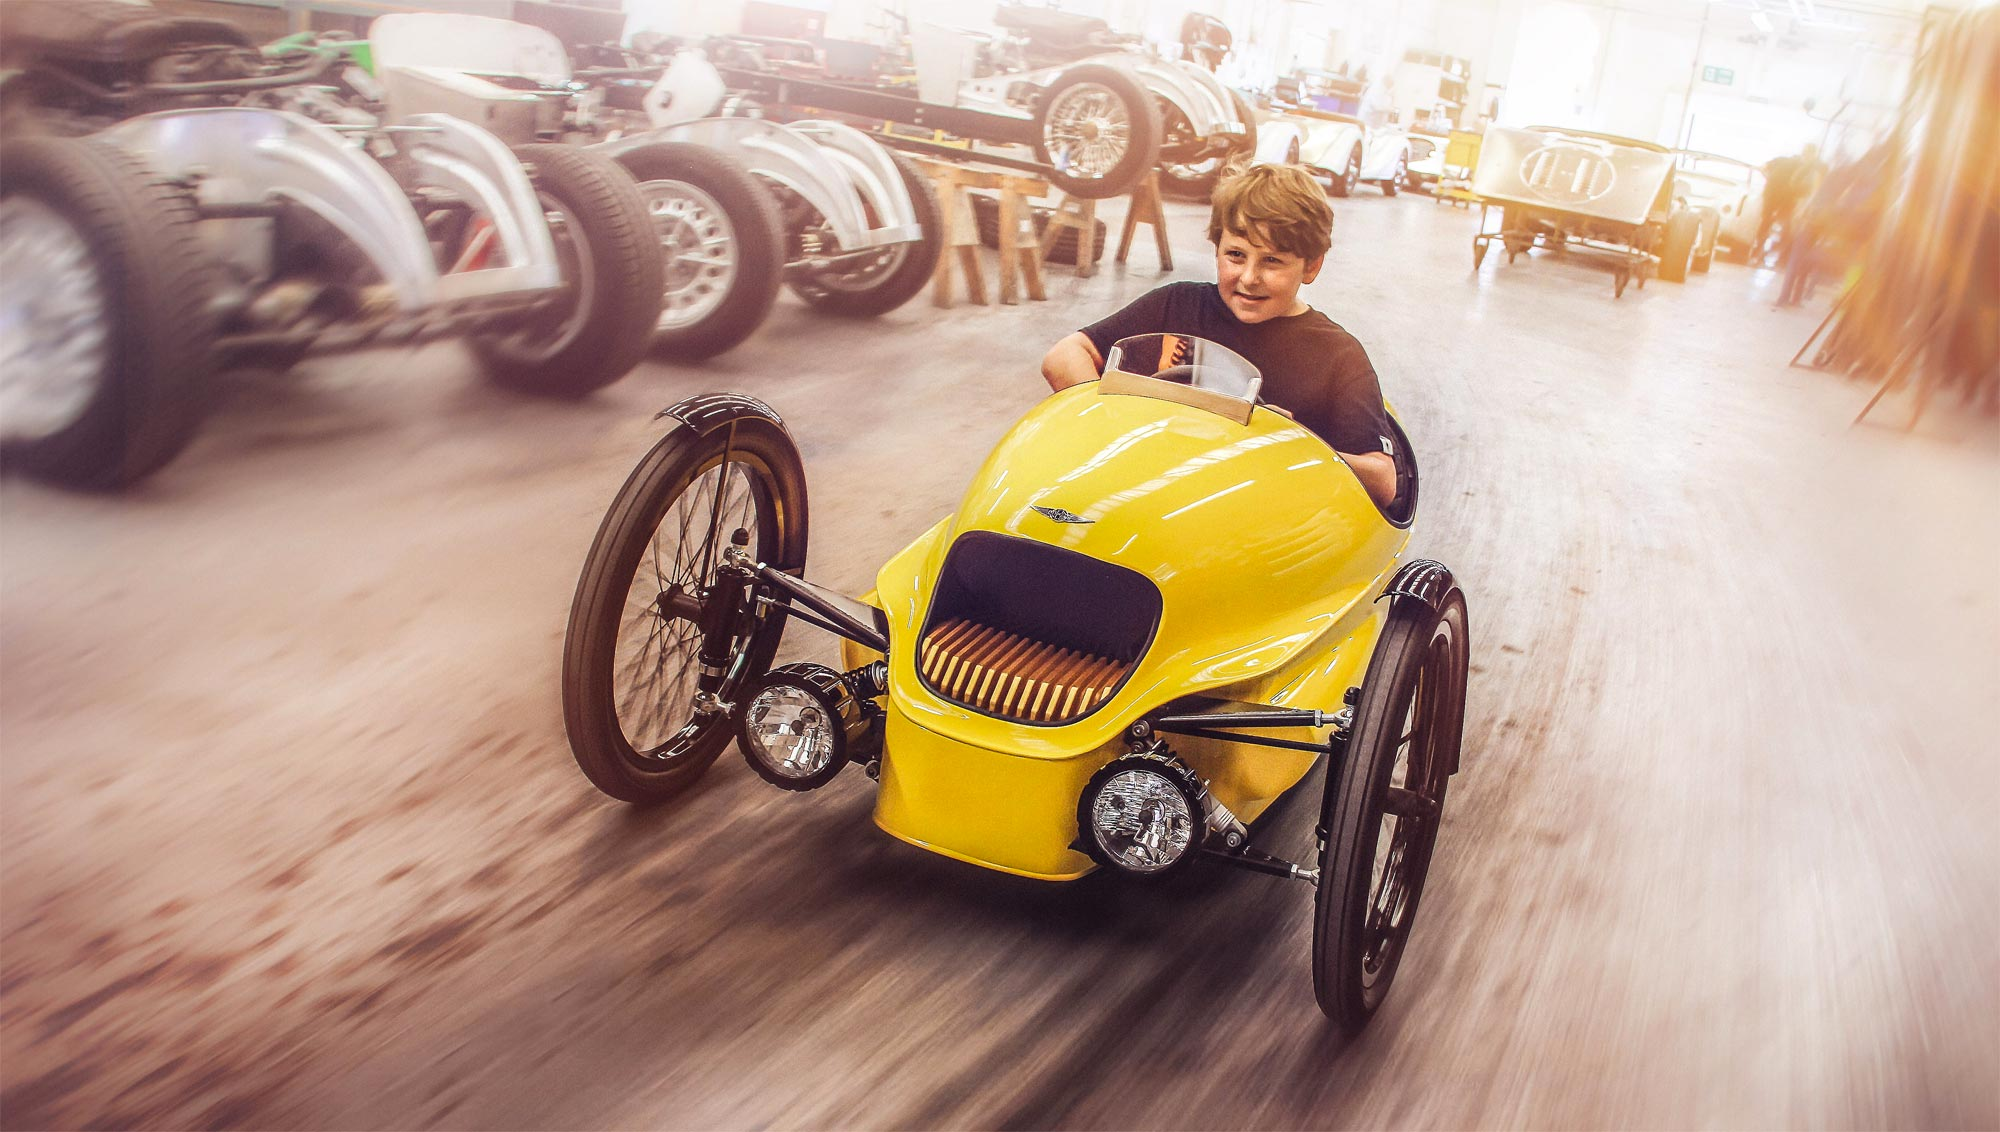 Morgan To Attract Younger Motoring Fans With The EV3 Junior